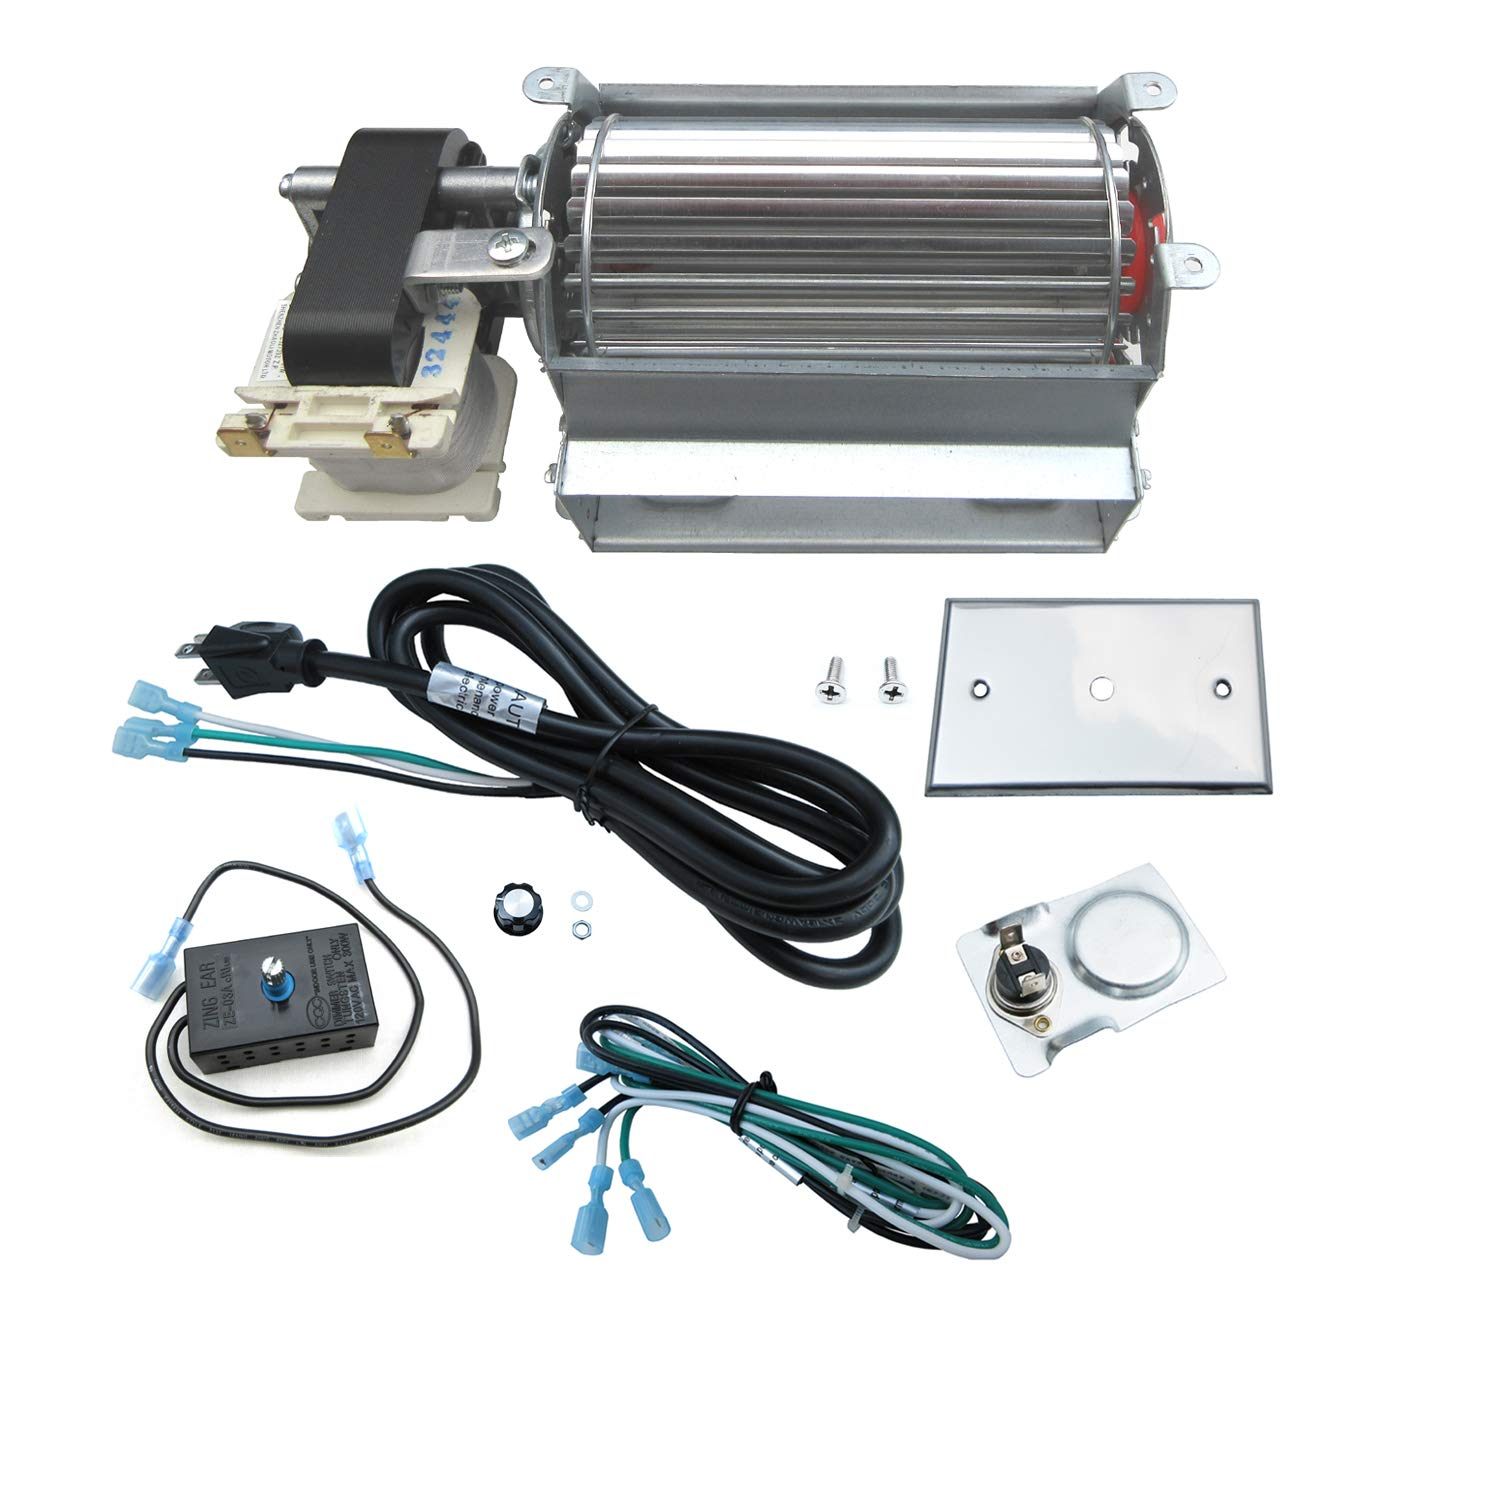 Direct store Parts Kit DN119 Fireplace Blower Kit FK21 GFK21 R7 ...